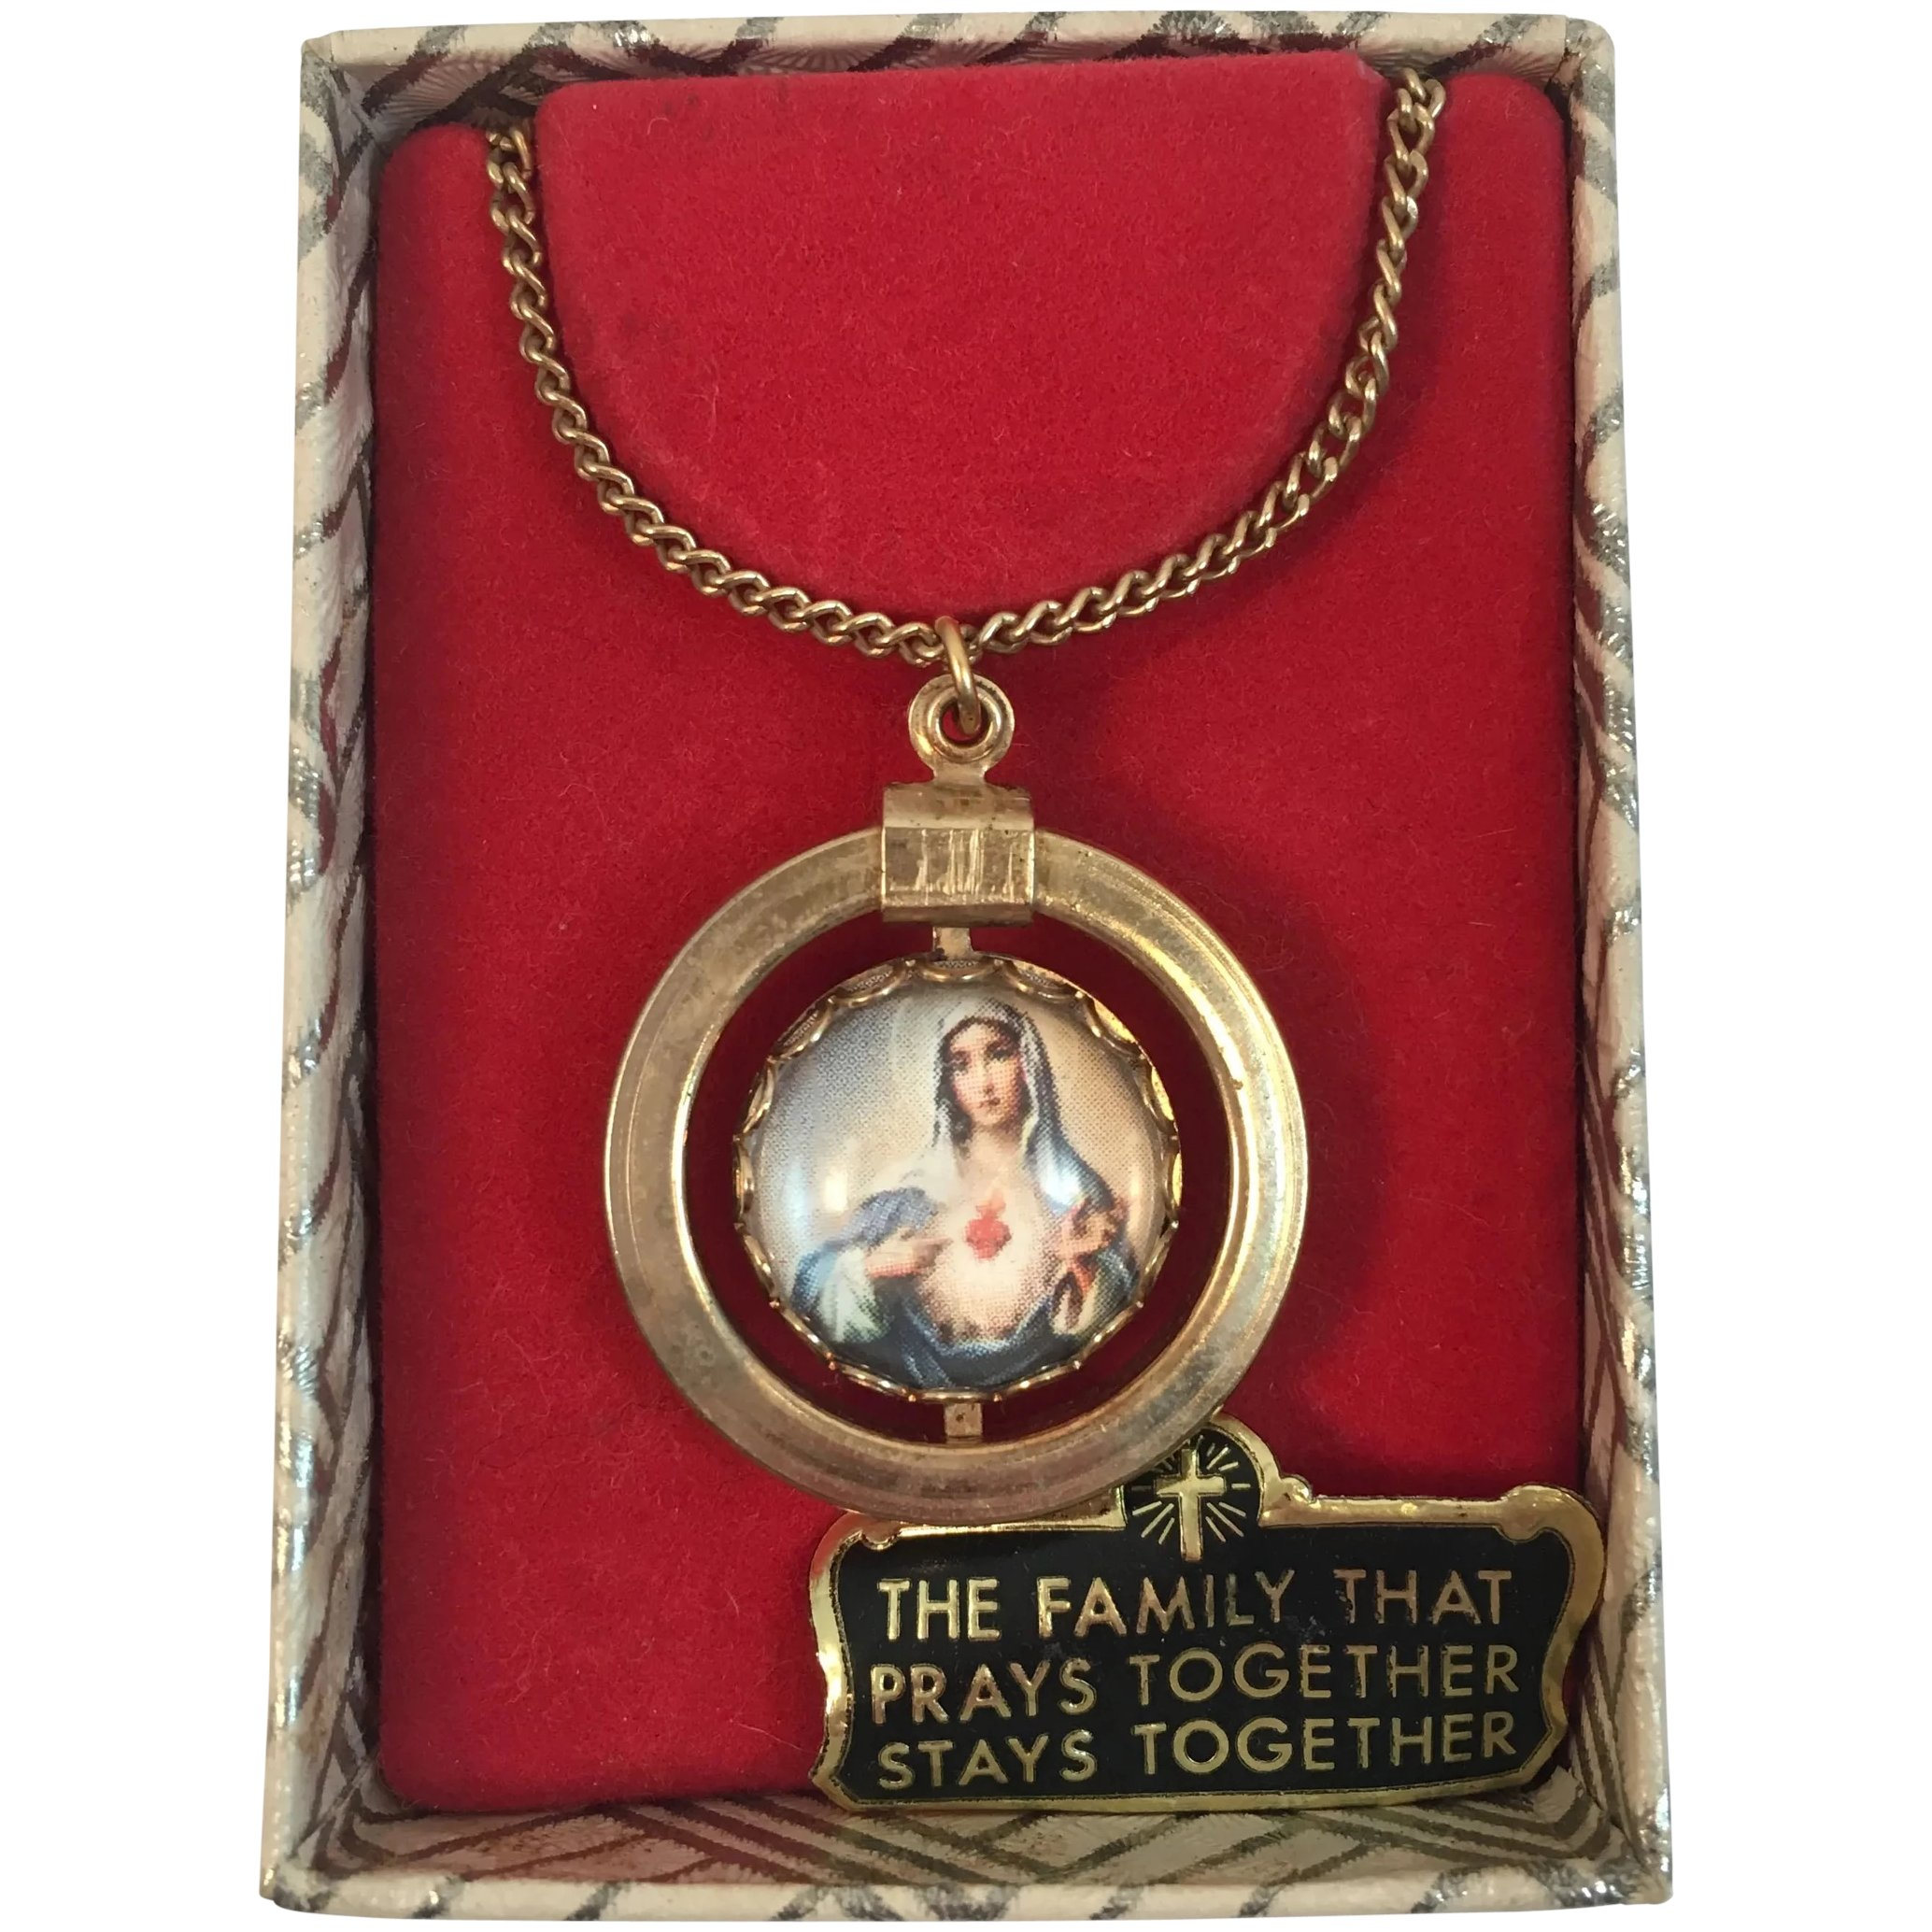 Immaculate pendant Maria/'s heart.